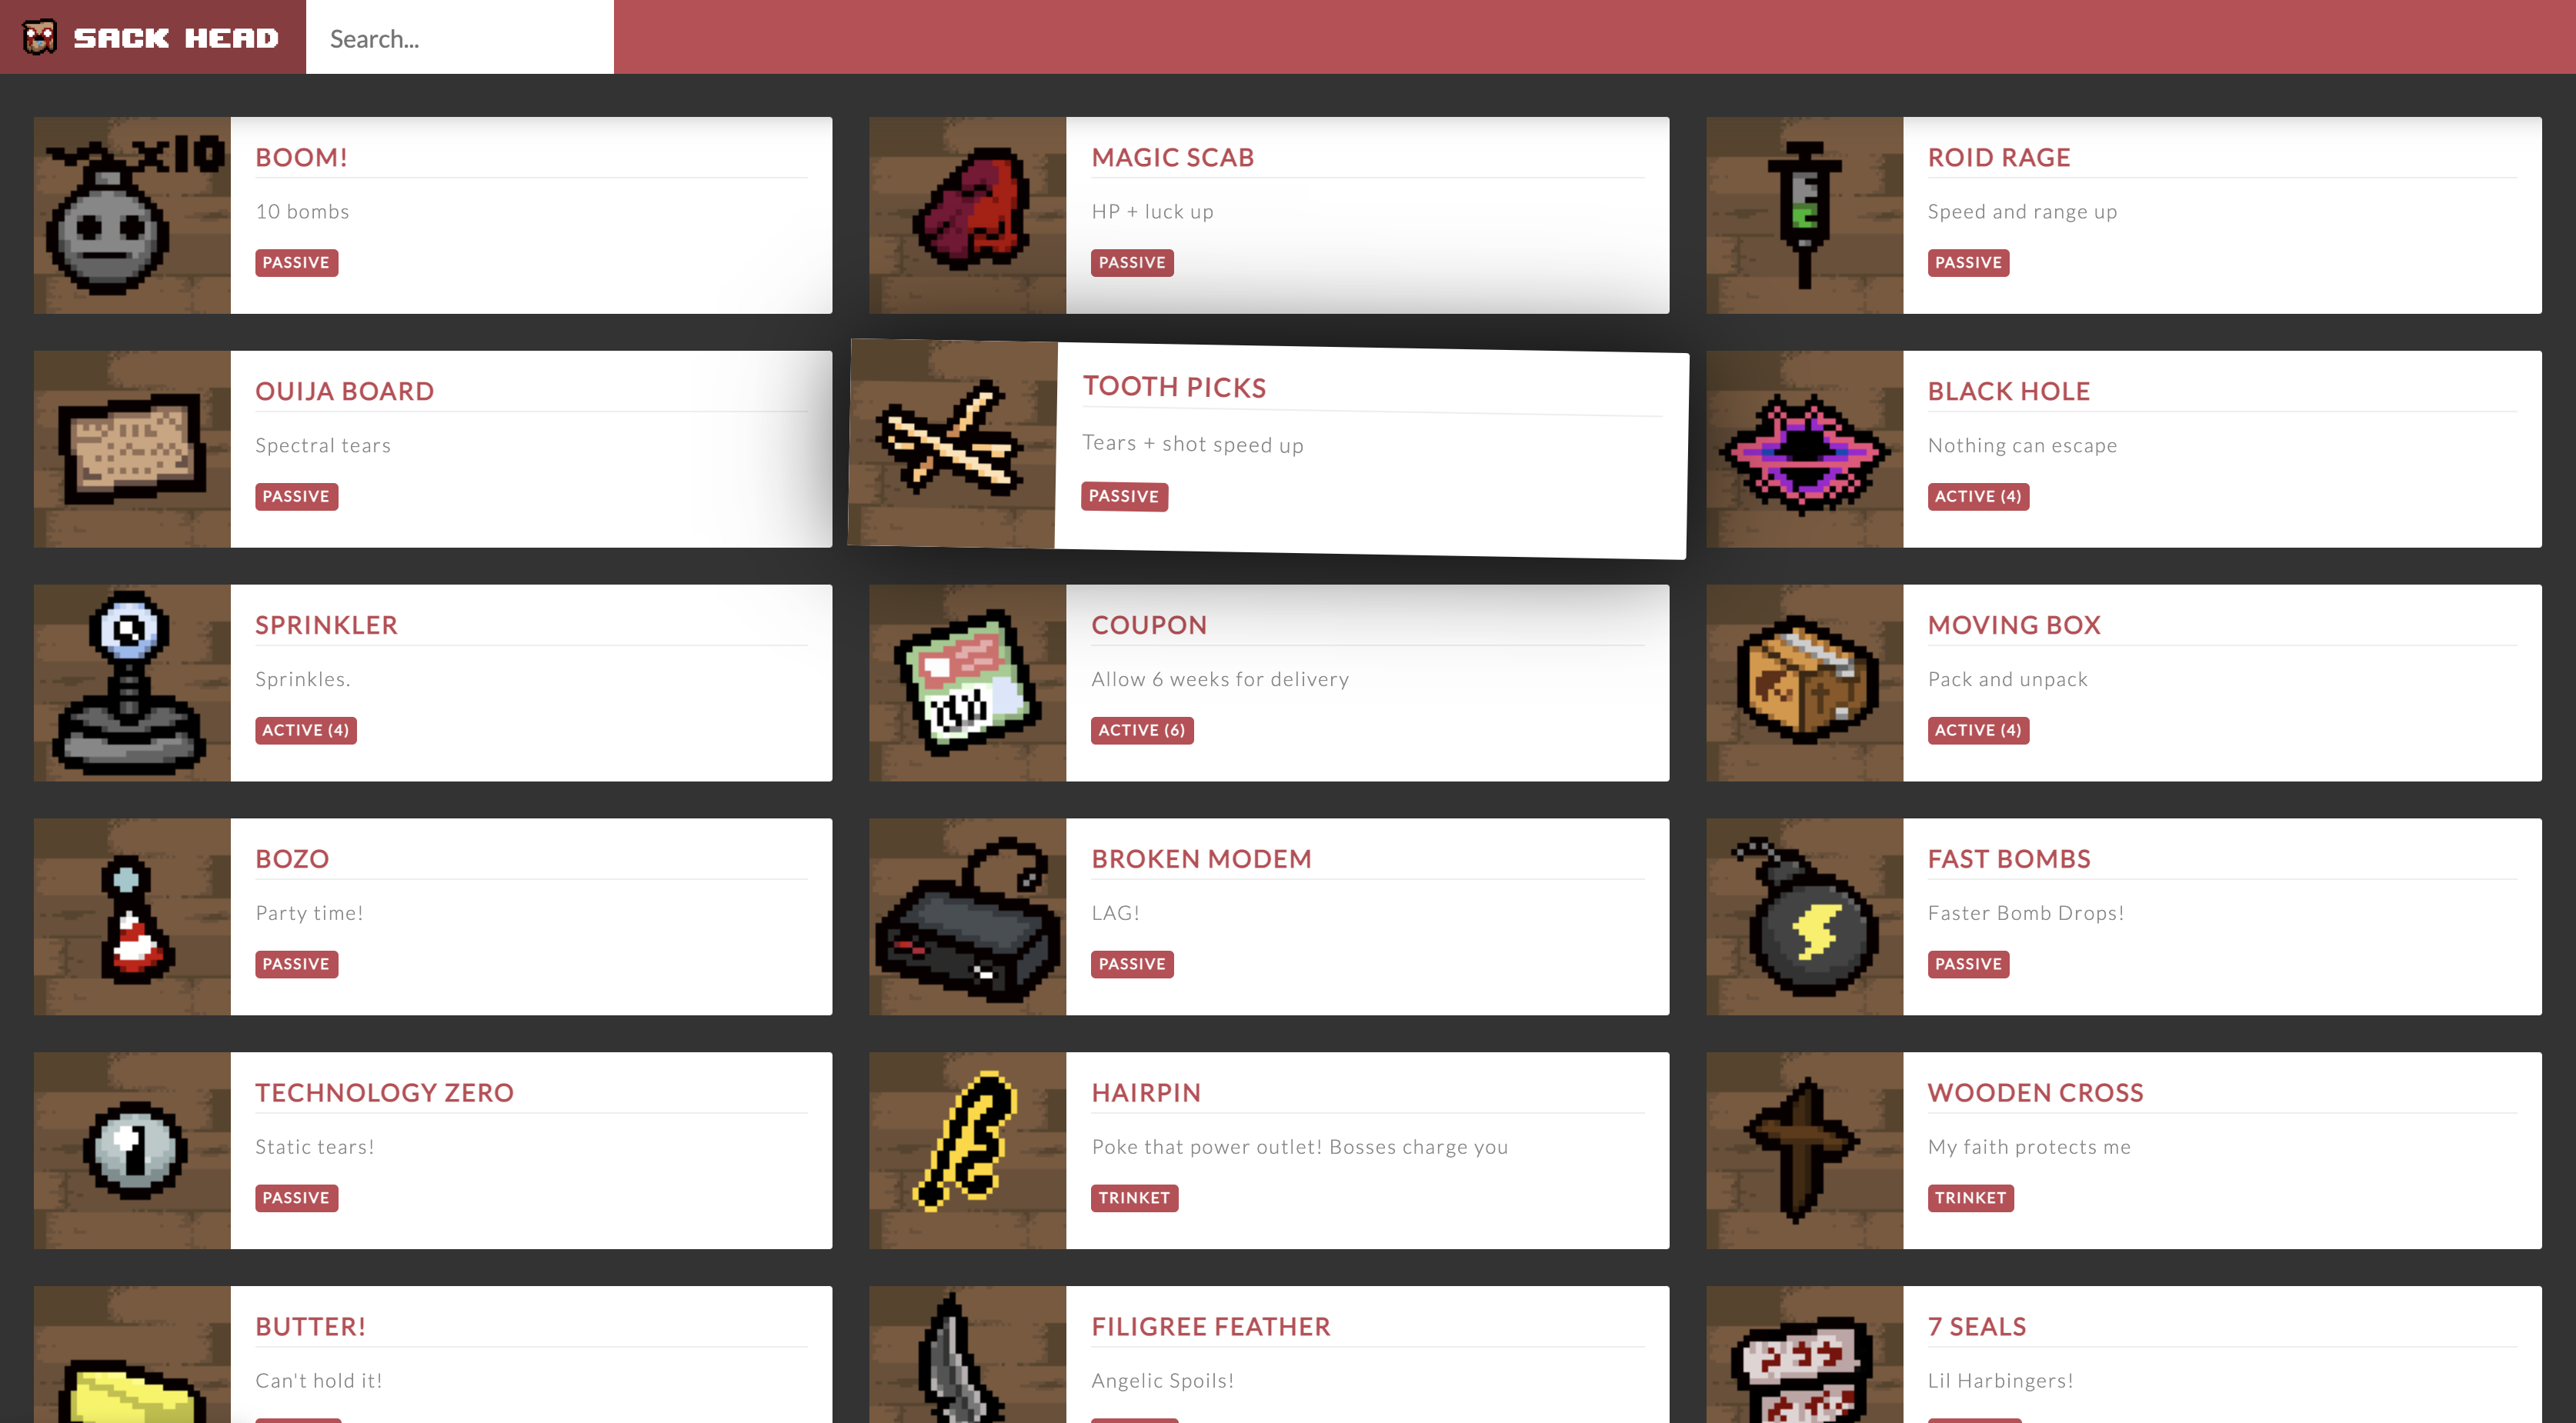 A screenshot of the Sack Head application displaying the main list of items.